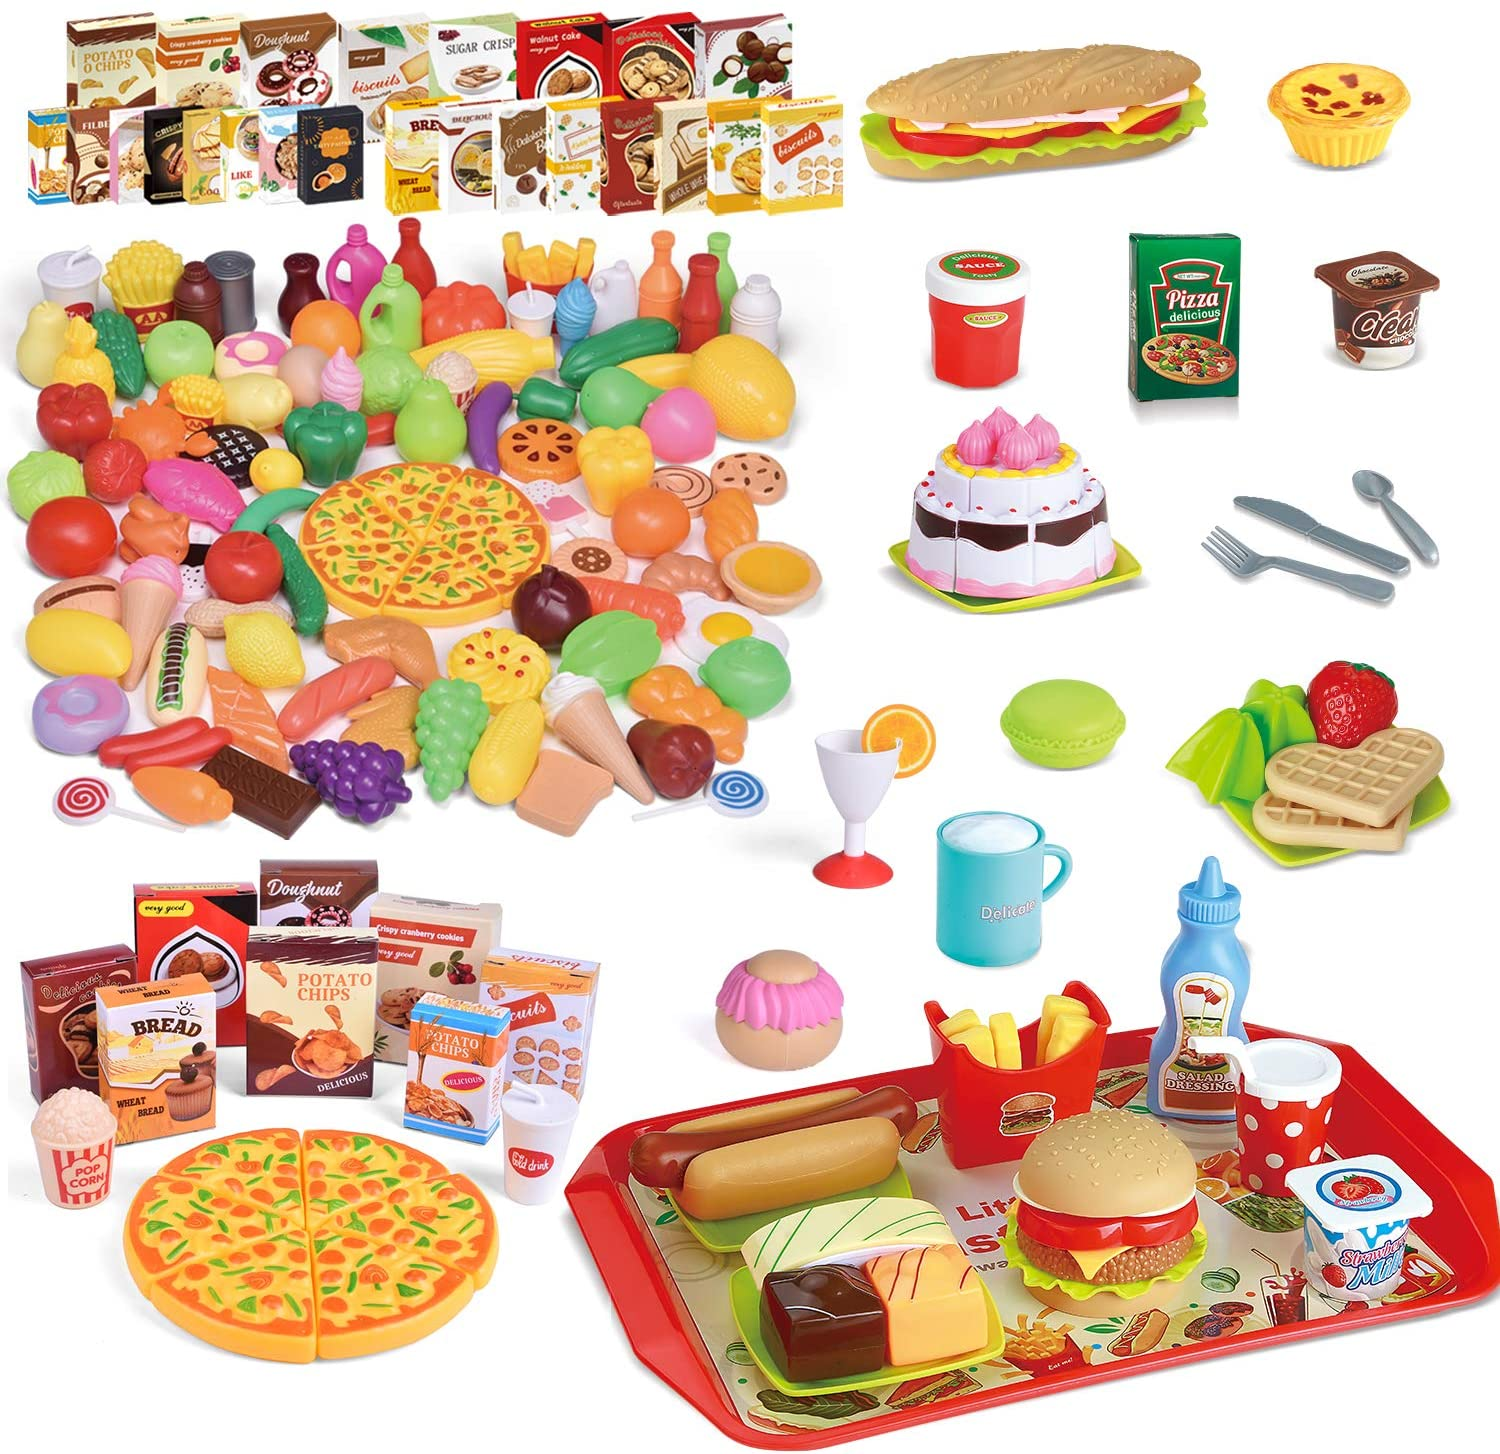 FUN LITTLE TOYS 177 PCs Pretend Play Food with Cutting Food and Accessory Toy Set